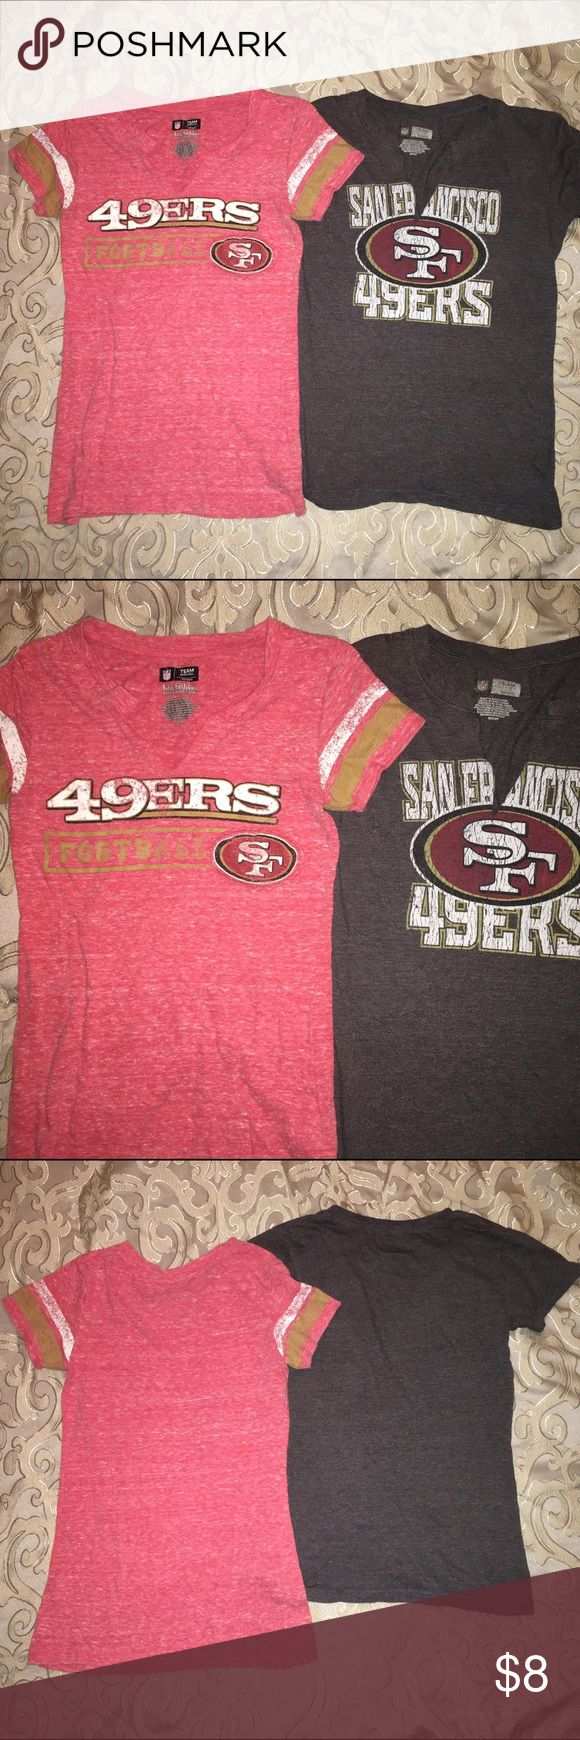 NFL Apparel Bundle San Francisco NFL Team Apparel , worn a few times NFL Apparel Tops